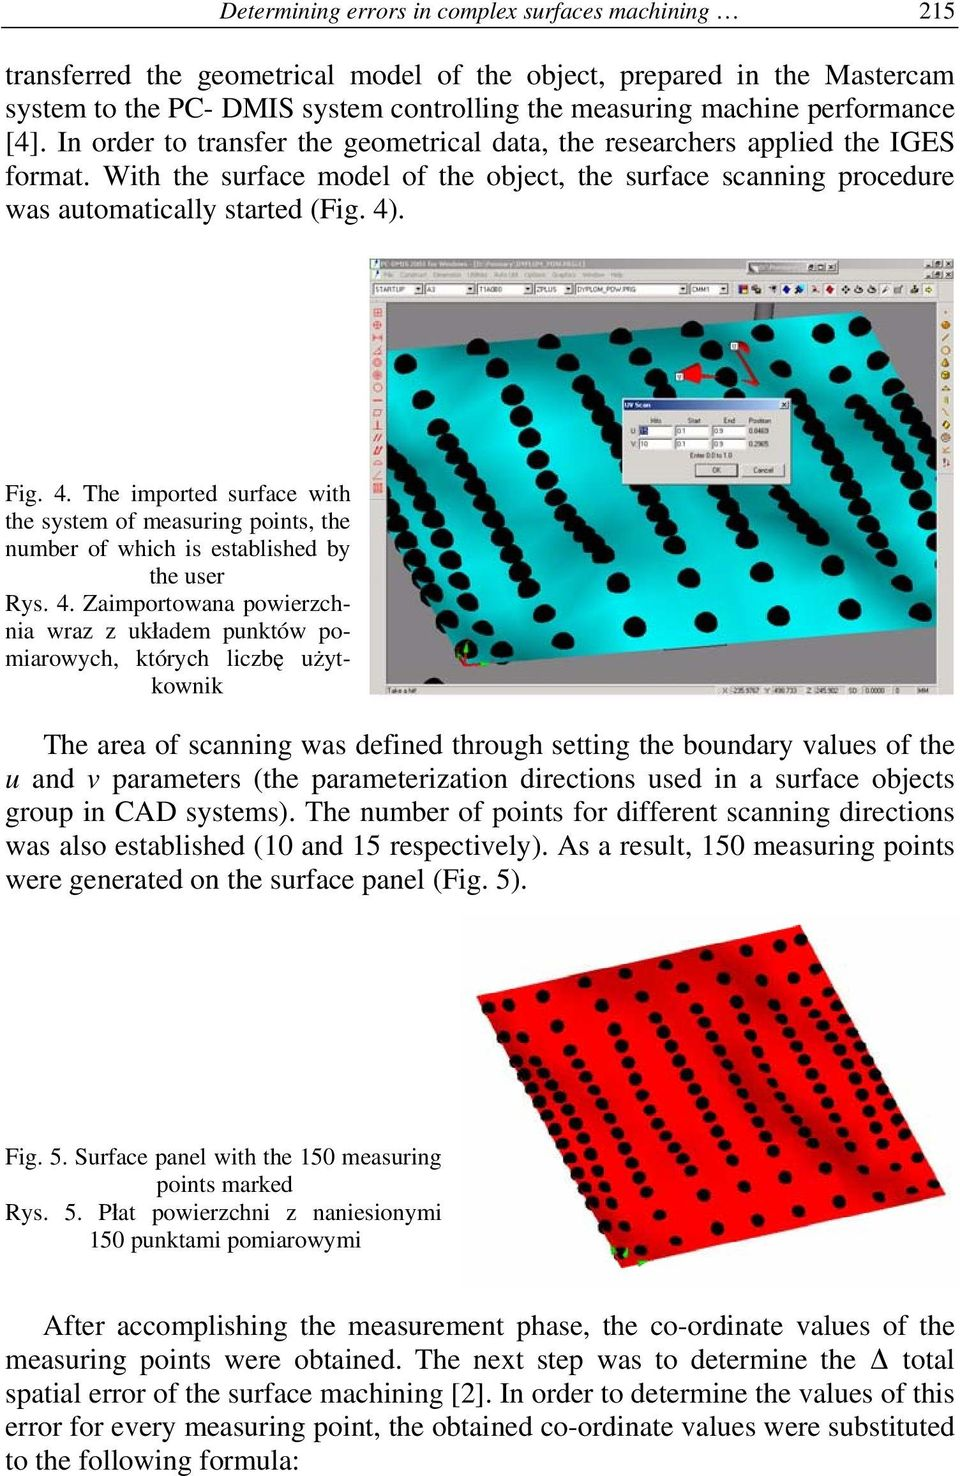 With the surface model of the object, the surface scanning procedure was automatically started (Fig. 4)